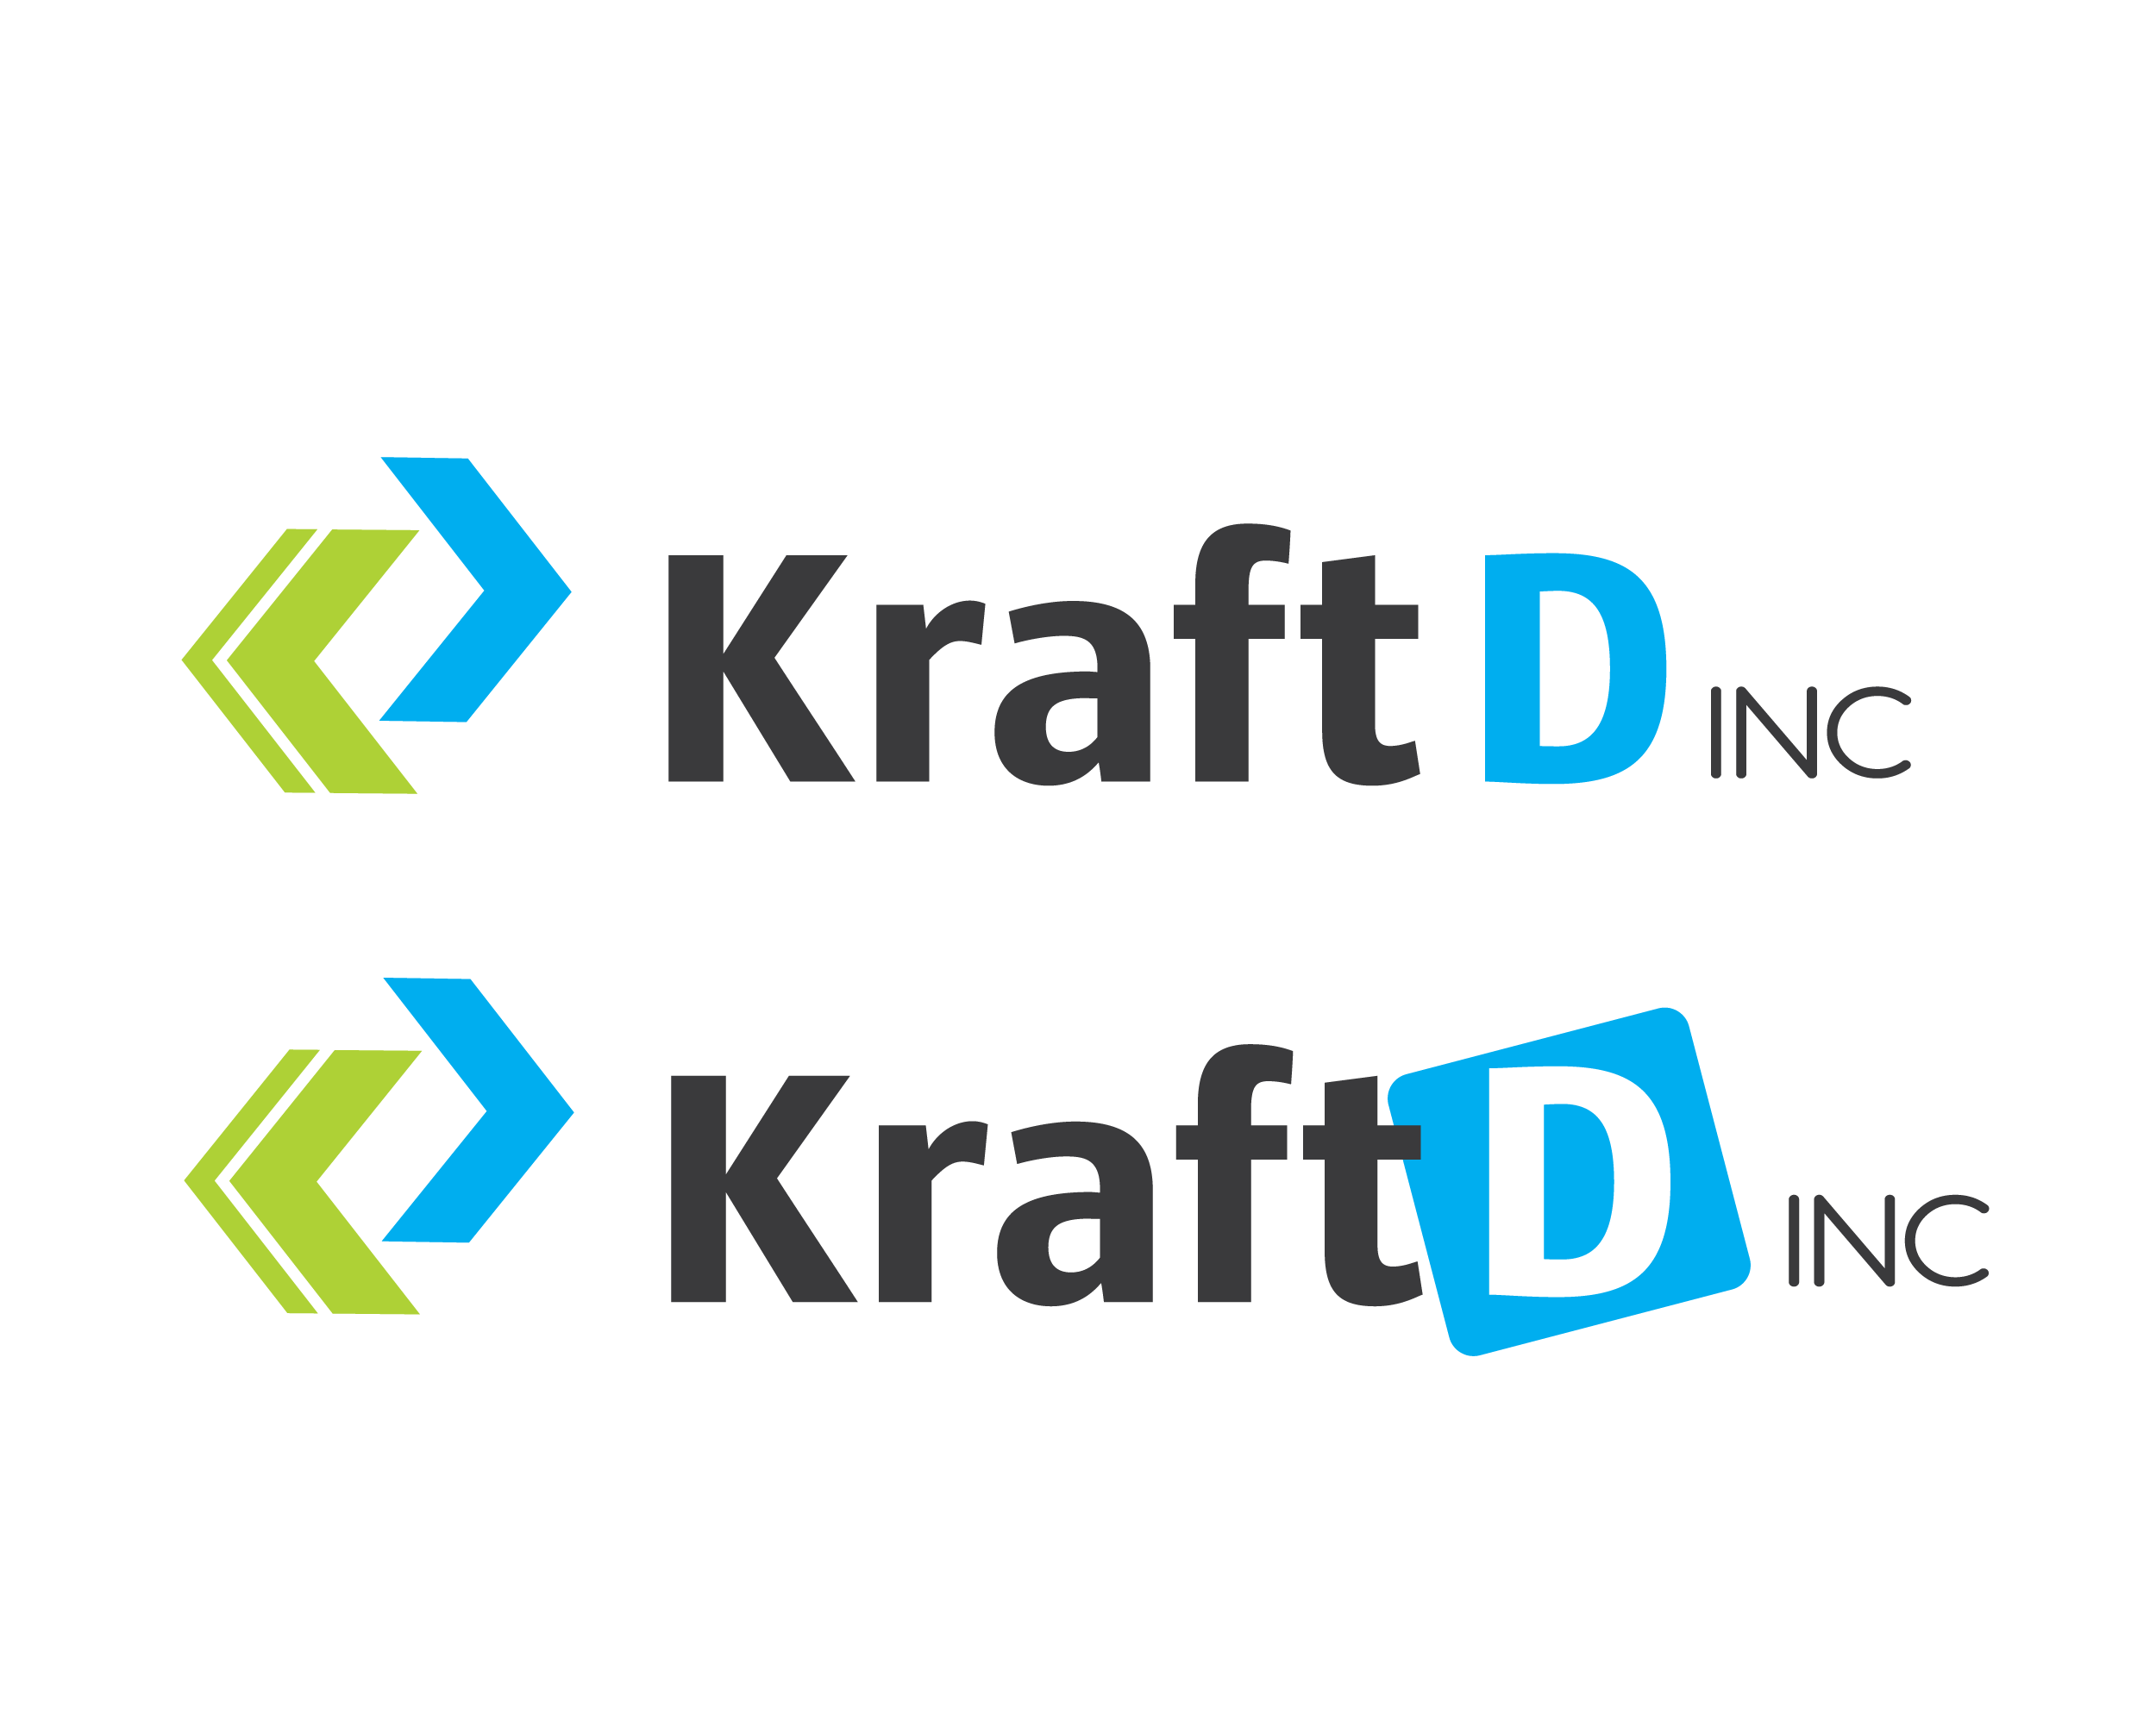 Logo Design by 354studio - Entry No. 418 in the Logo Design Contest Unique Logo Design Wanted for Kraft D Inc.